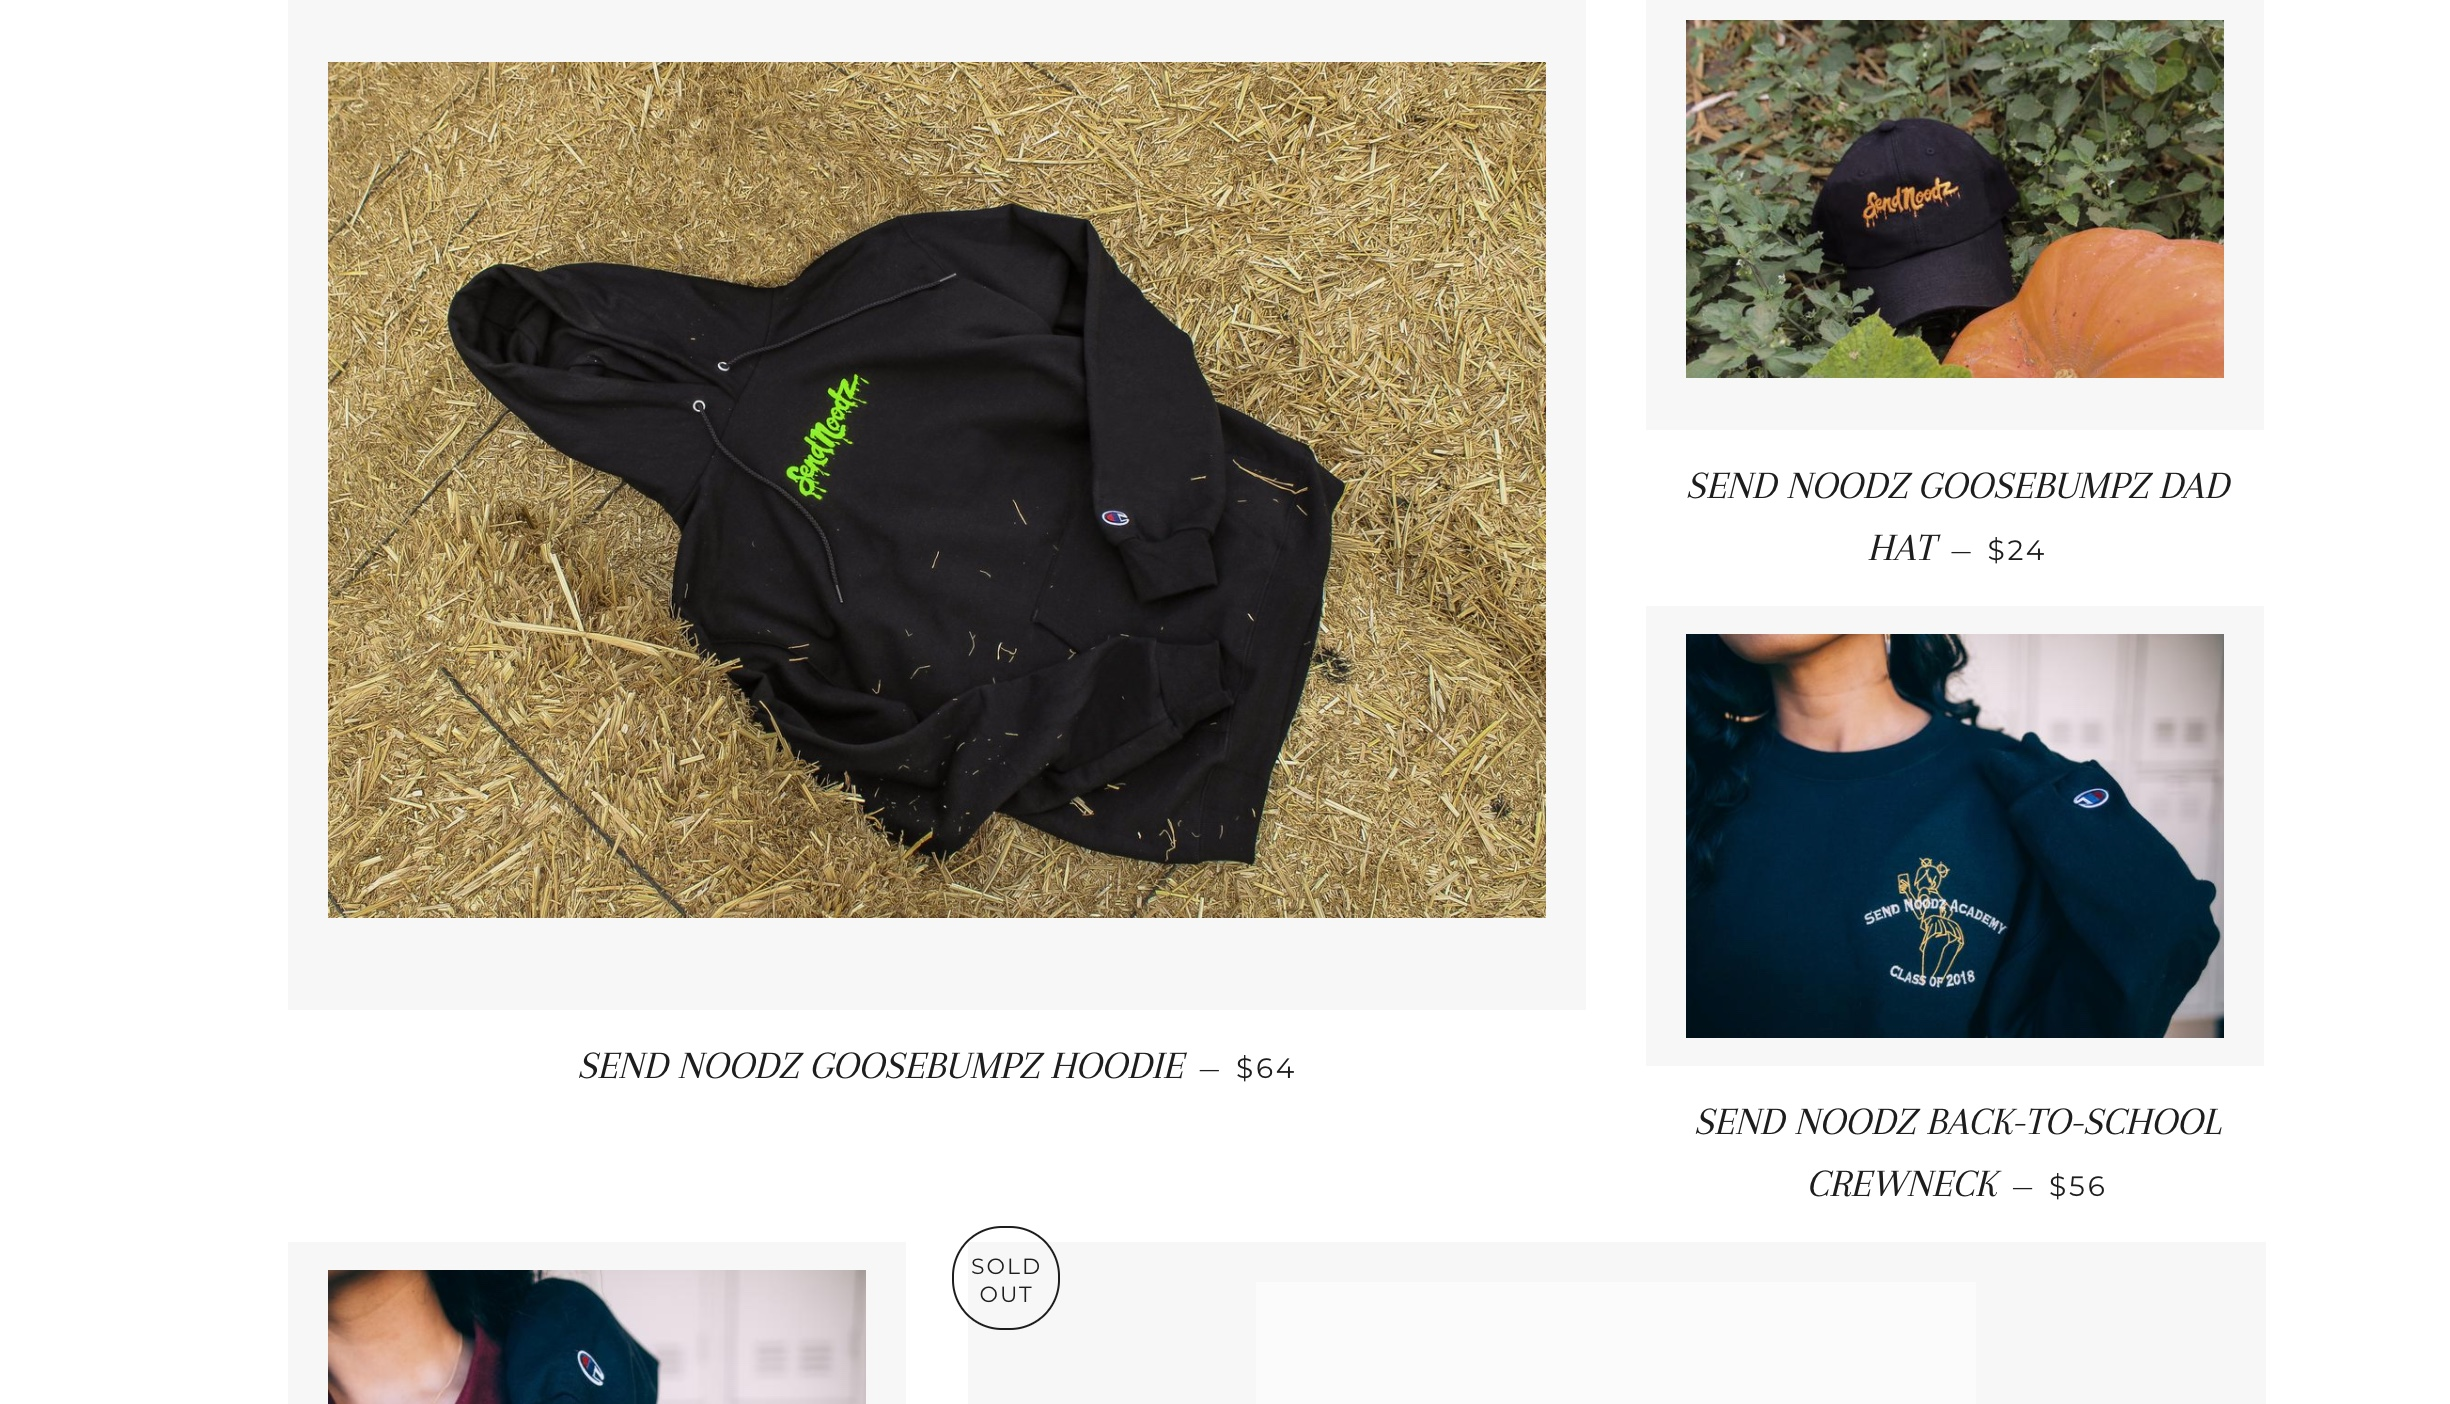 Noodles' clothing line, Send Noodz,drops capsule releases of embroidered basics through Shopify.